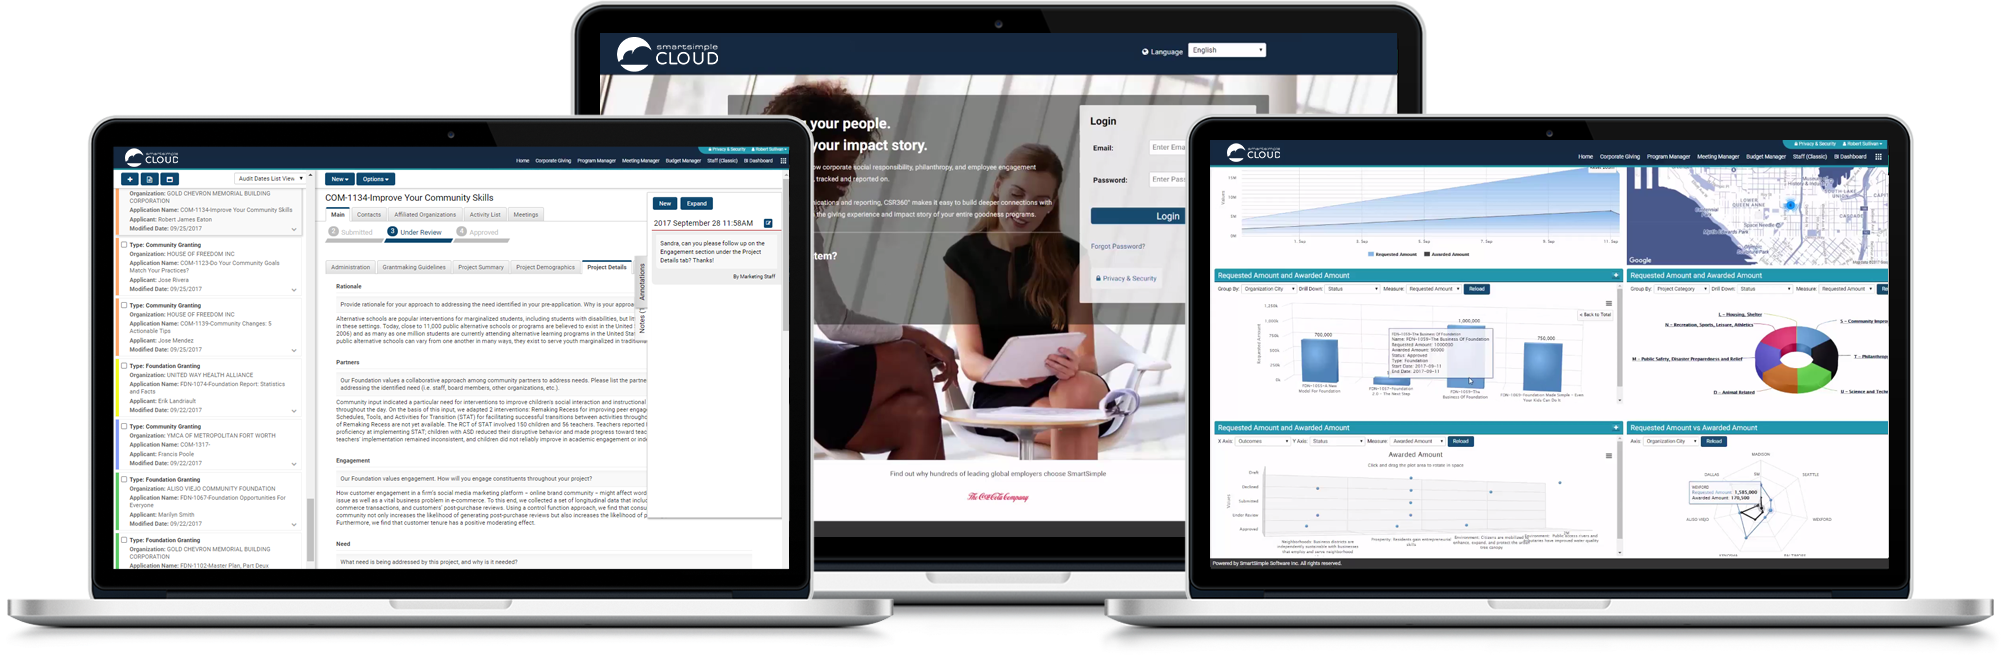 SmartSimple CLOUD for Grants Management Software - CSR & corporate giving for companies